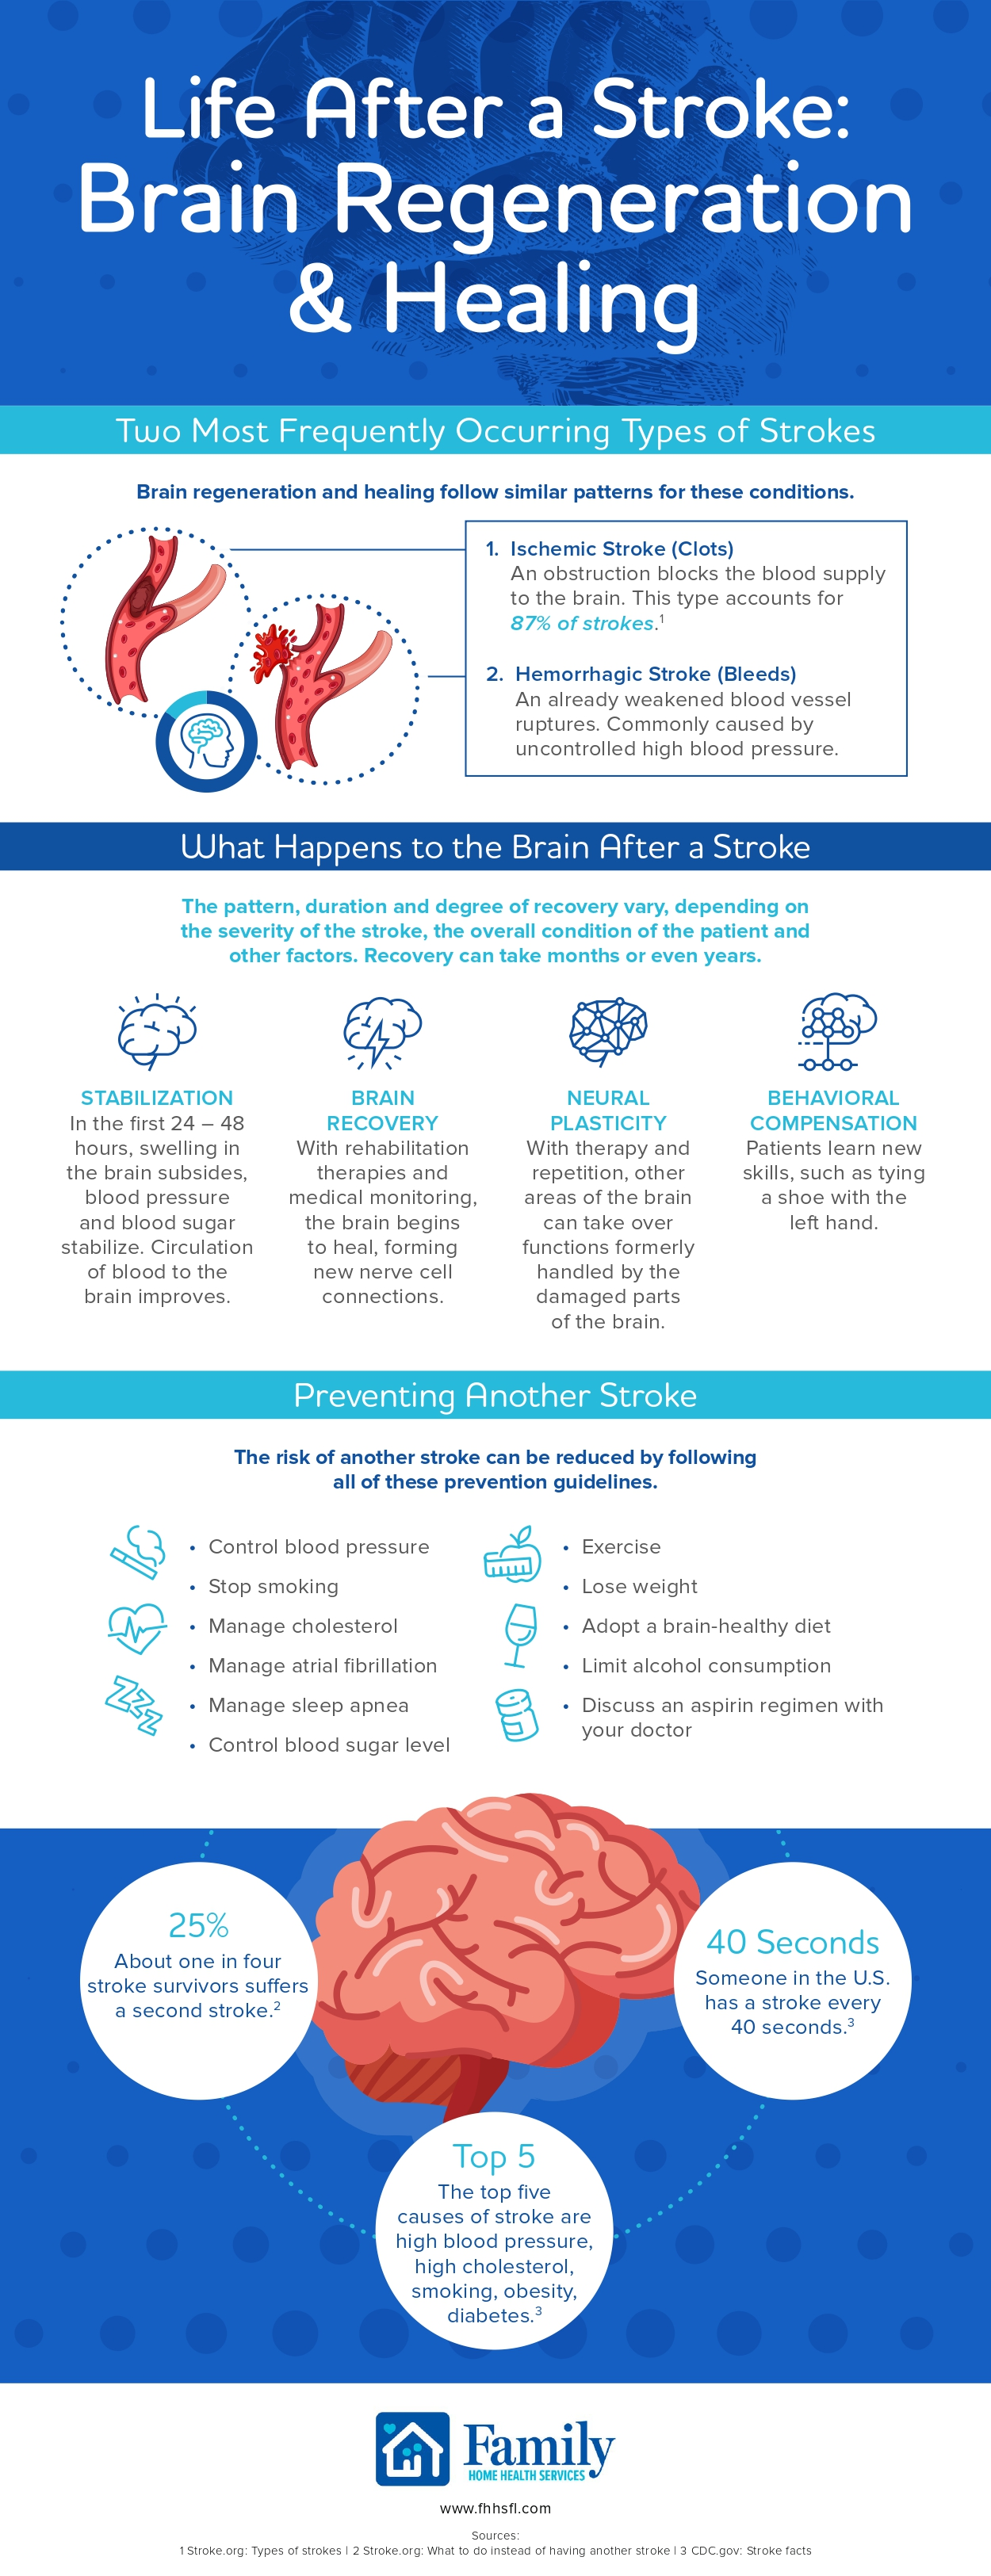 Life After a Stroke: Brain Regeneration and Healing